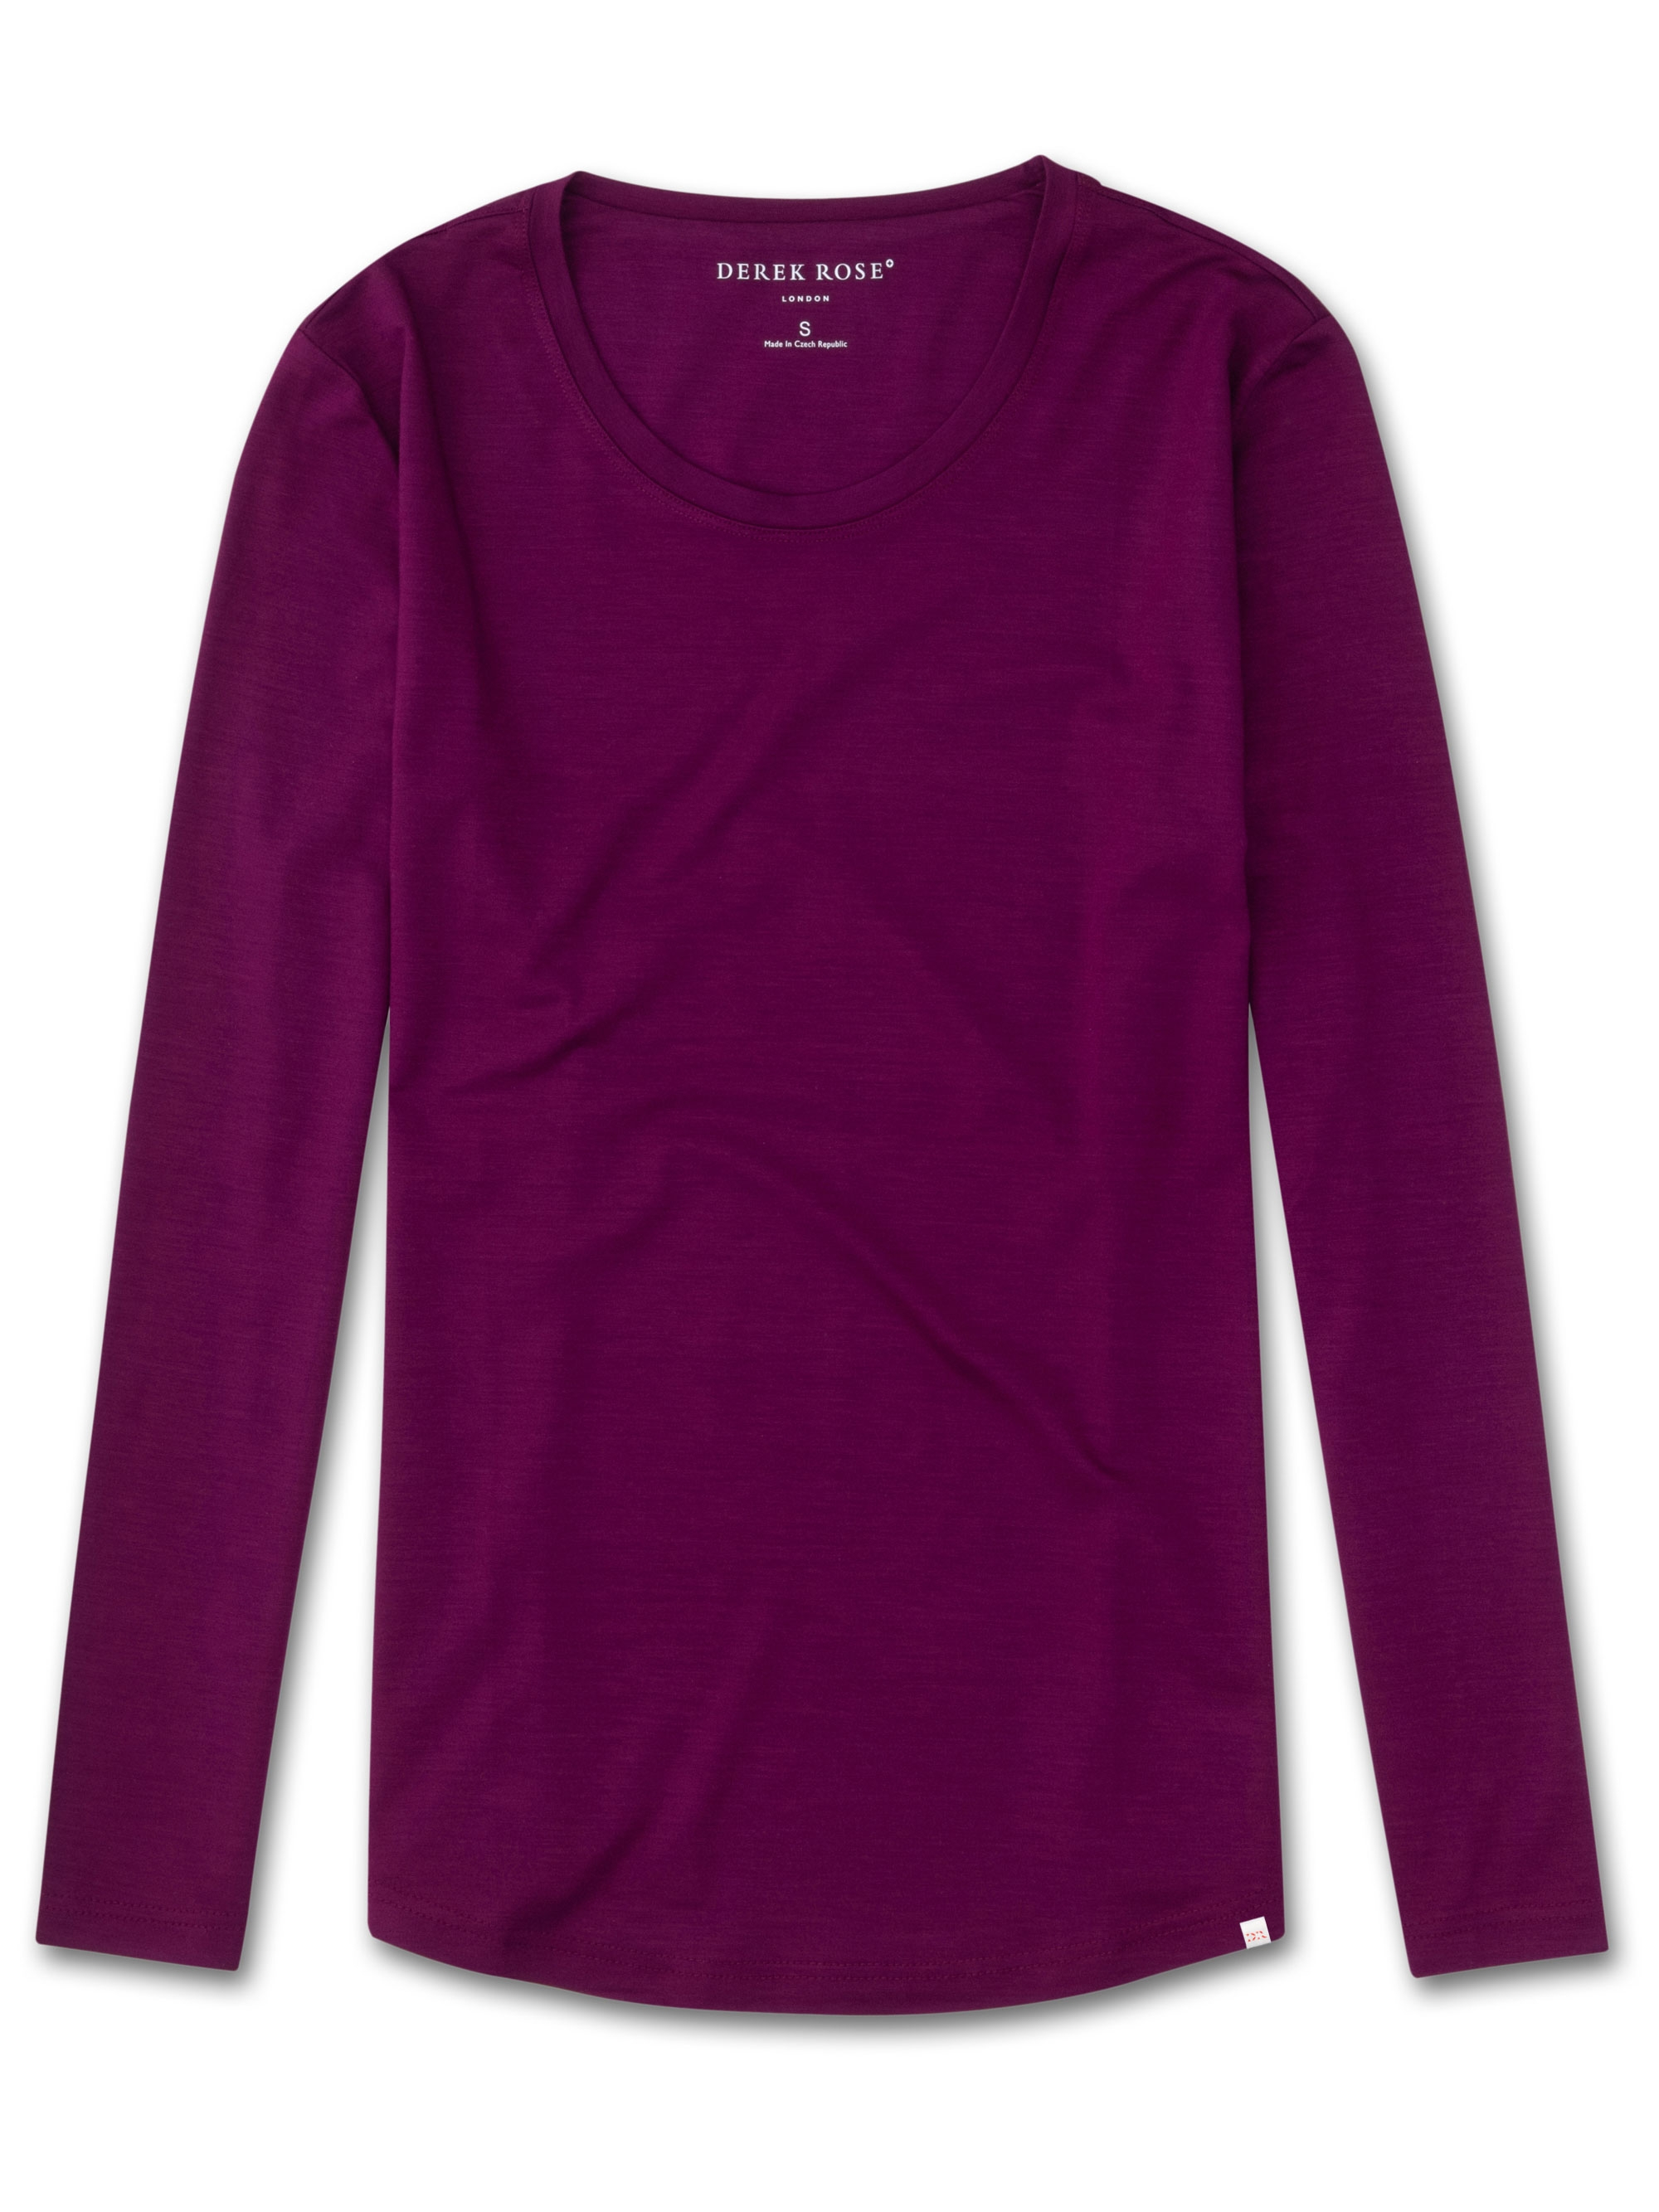 Derek Rose Women's Long Sleeve T-Shirt Lara Micro Modal Stretch Berry